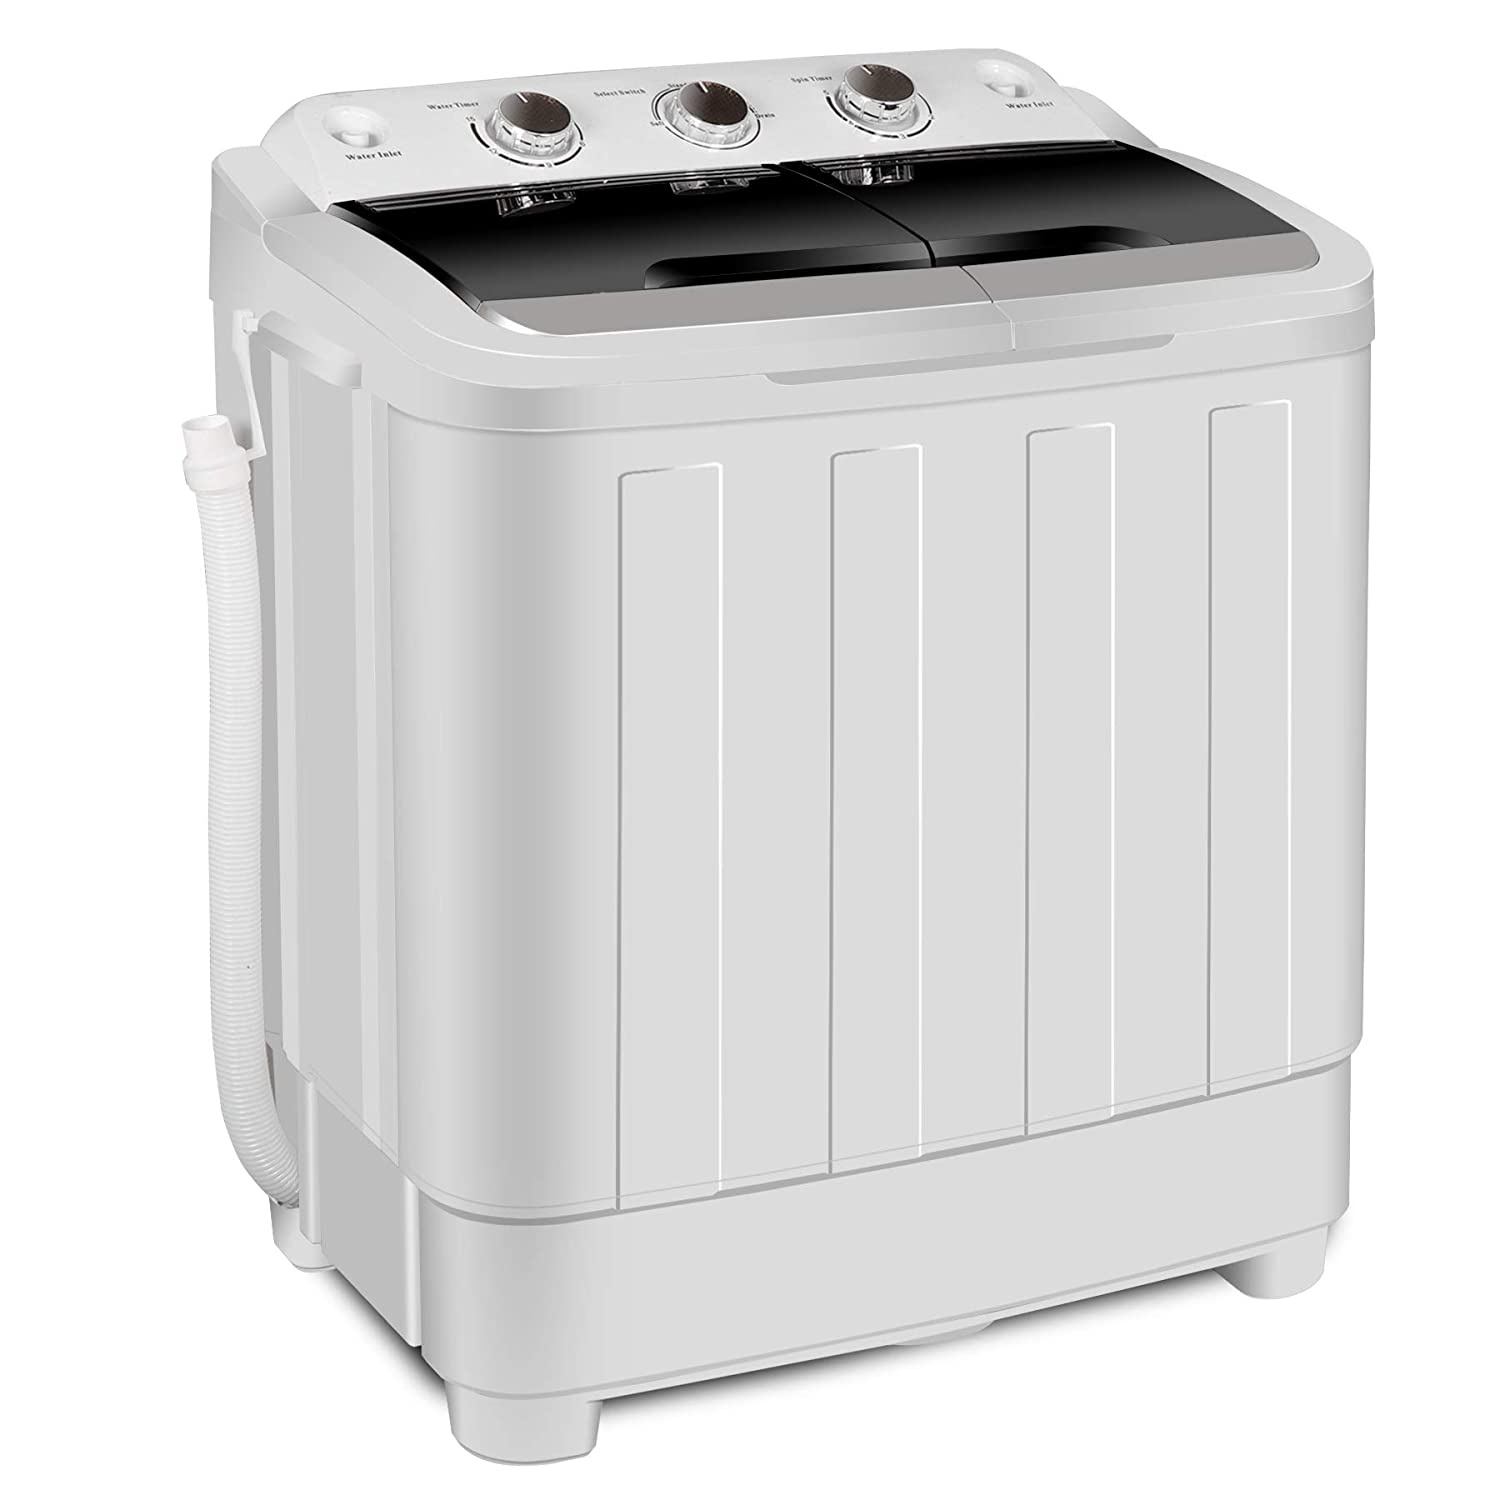 17.6lbs Portable Compact Washer Mini Twin Tub Washing Machine Electric Automatic Load Laundry includes Spin Cycle Dryer and Gravity Drain Pump,Hose for Apartments,Dorm Rooms,RV's,White and Black